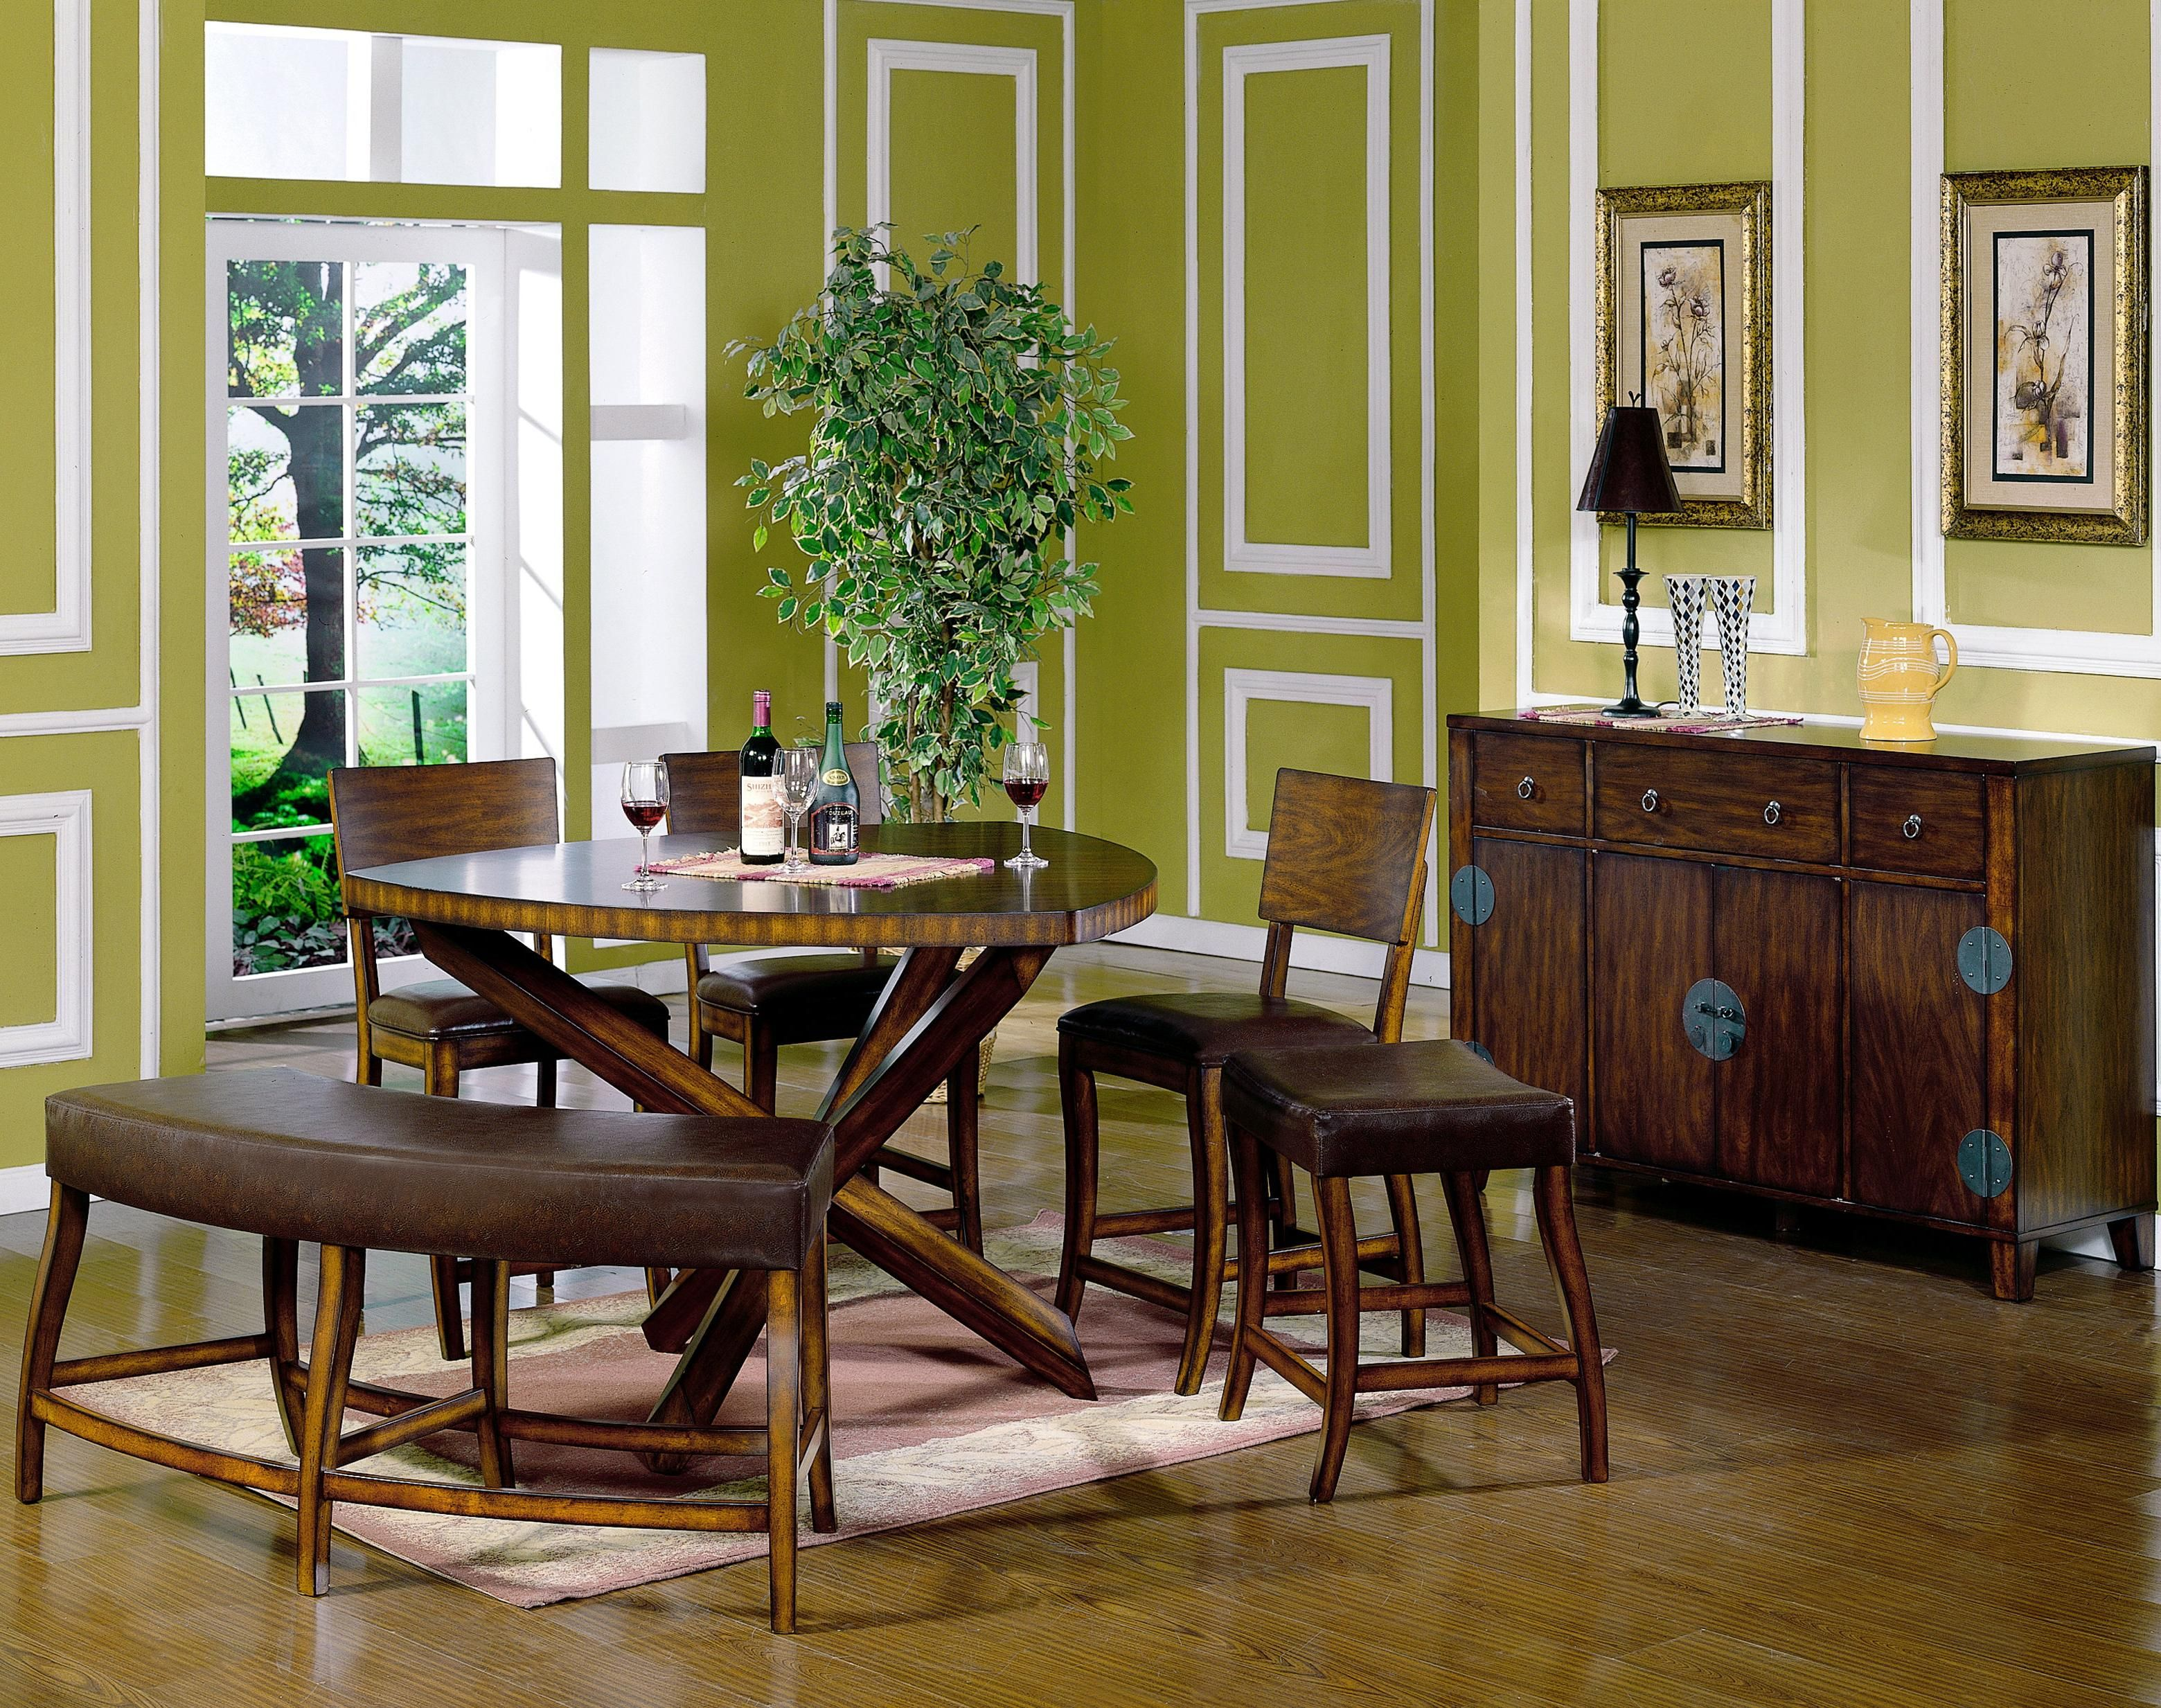 Green Dining Room Ideas Terrys Fabrics Blog Blue And  Home Design Amusing Green Dining Room Walls Design Decoration